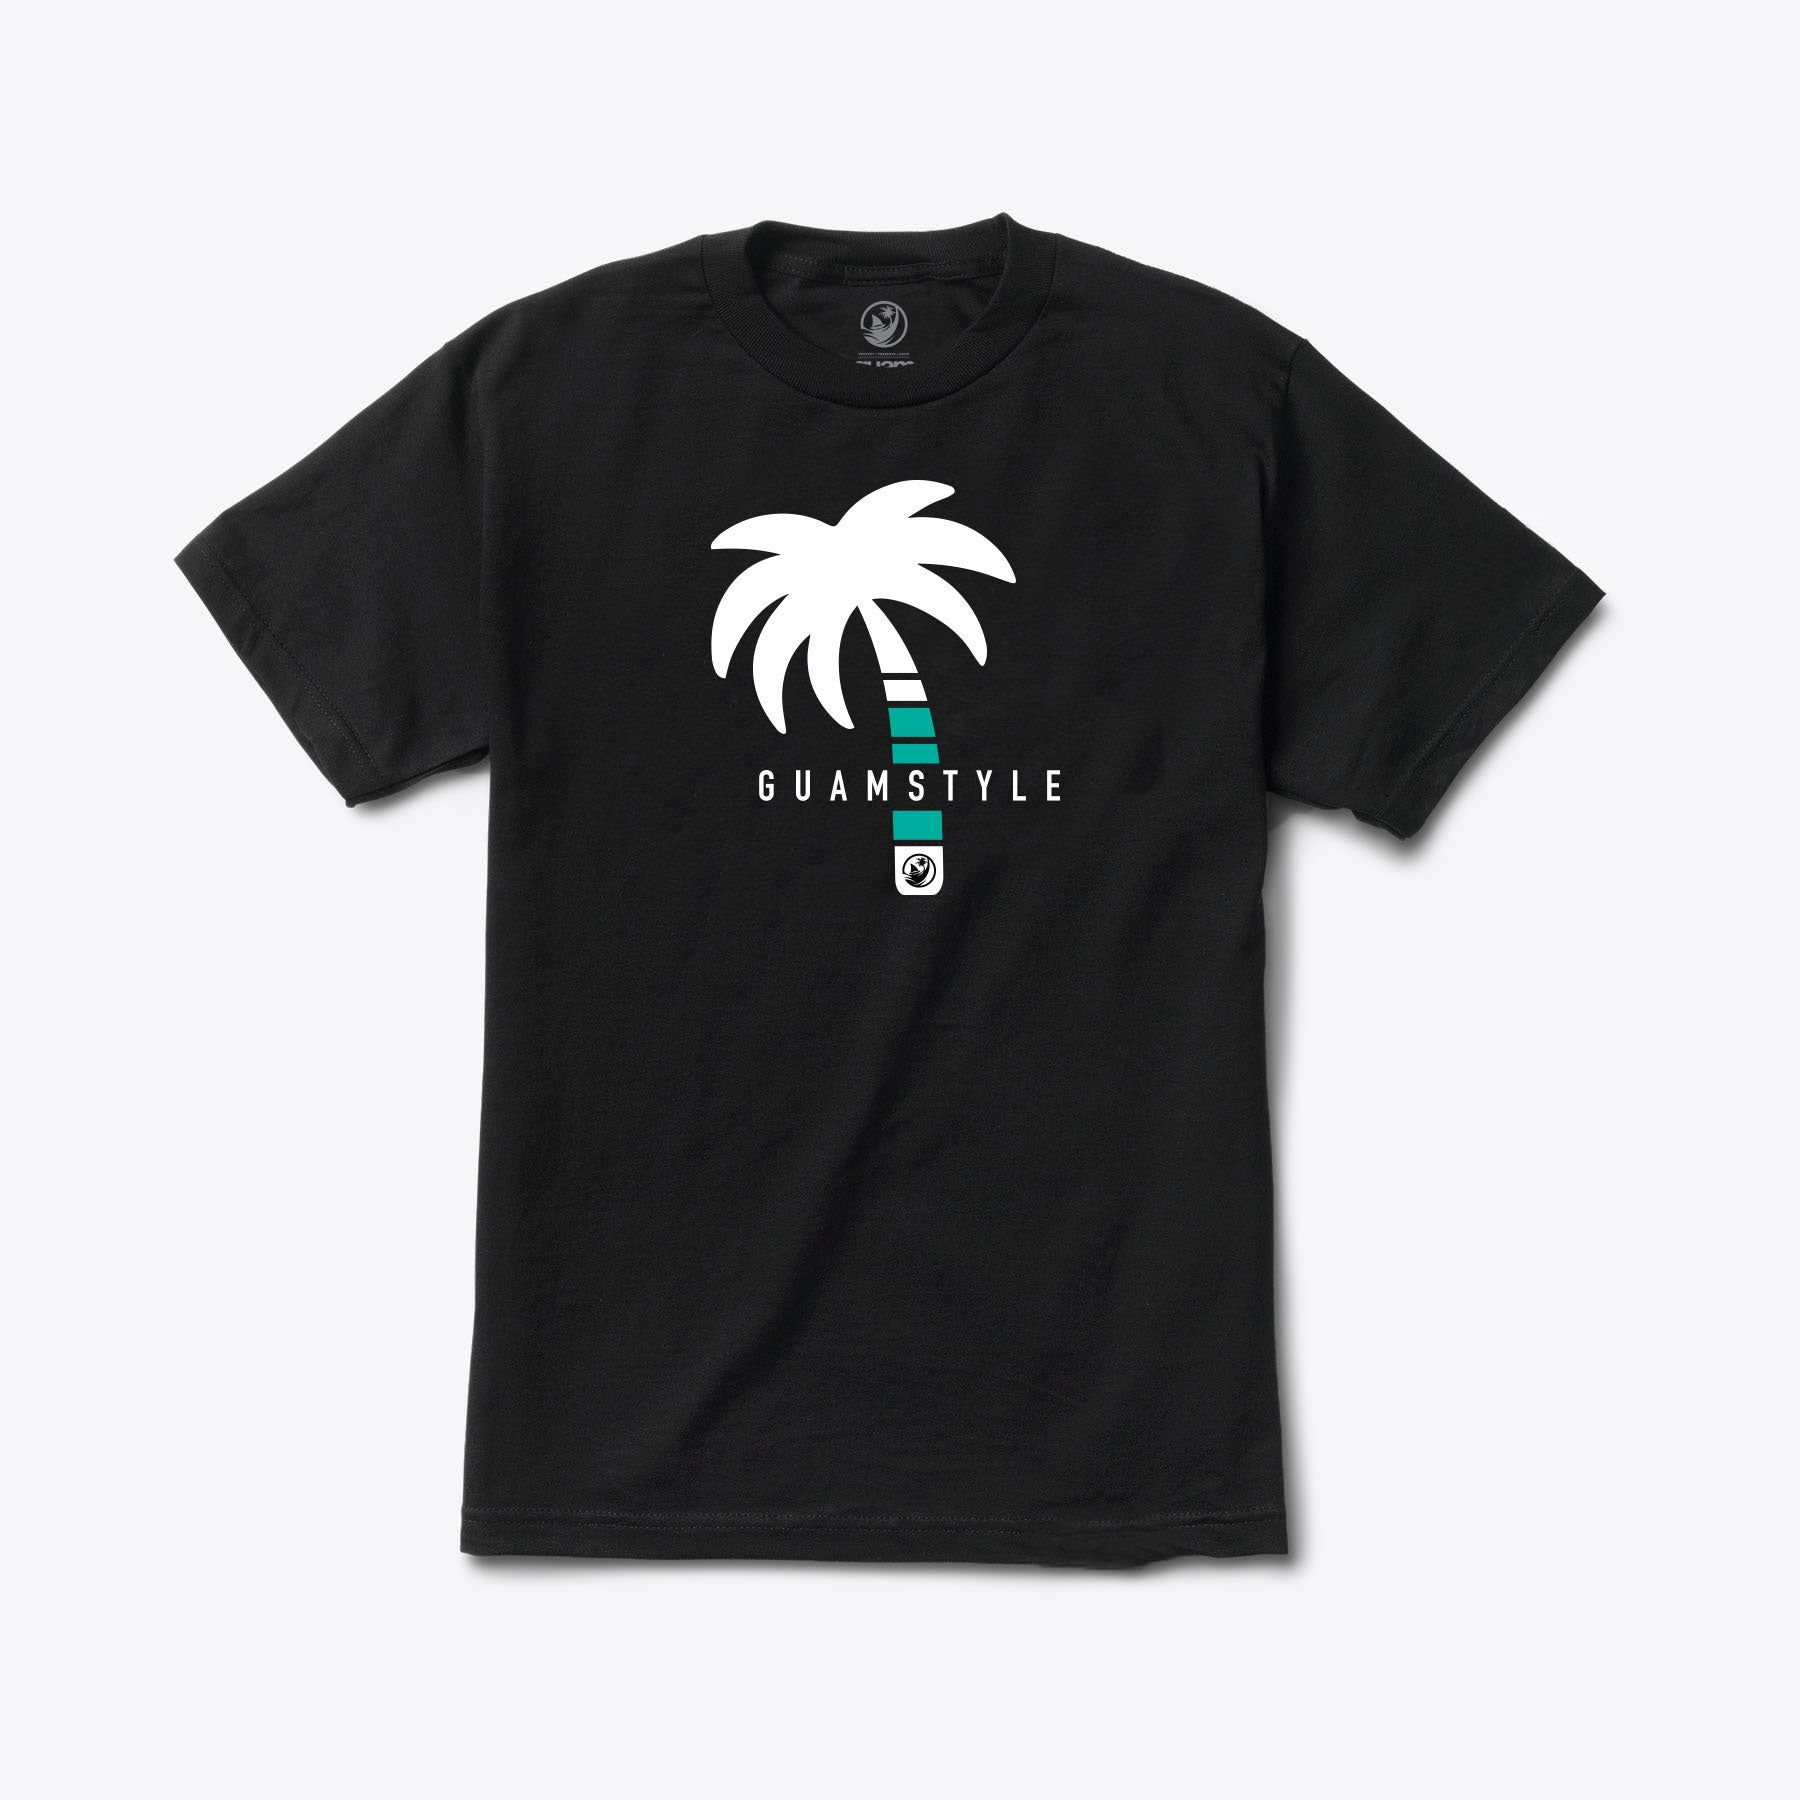 Sway Tee by Guamstyle